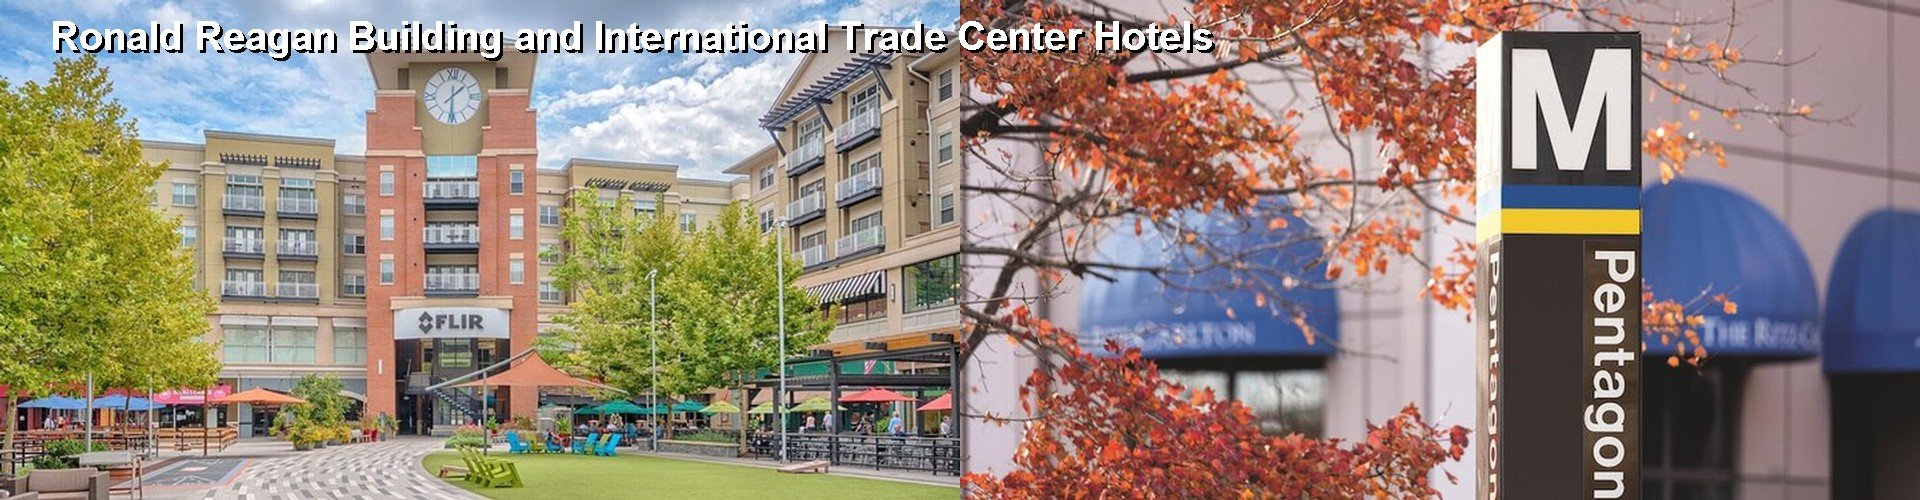 5 Best Hotels near Ronald Reagan Building and International Trade Center